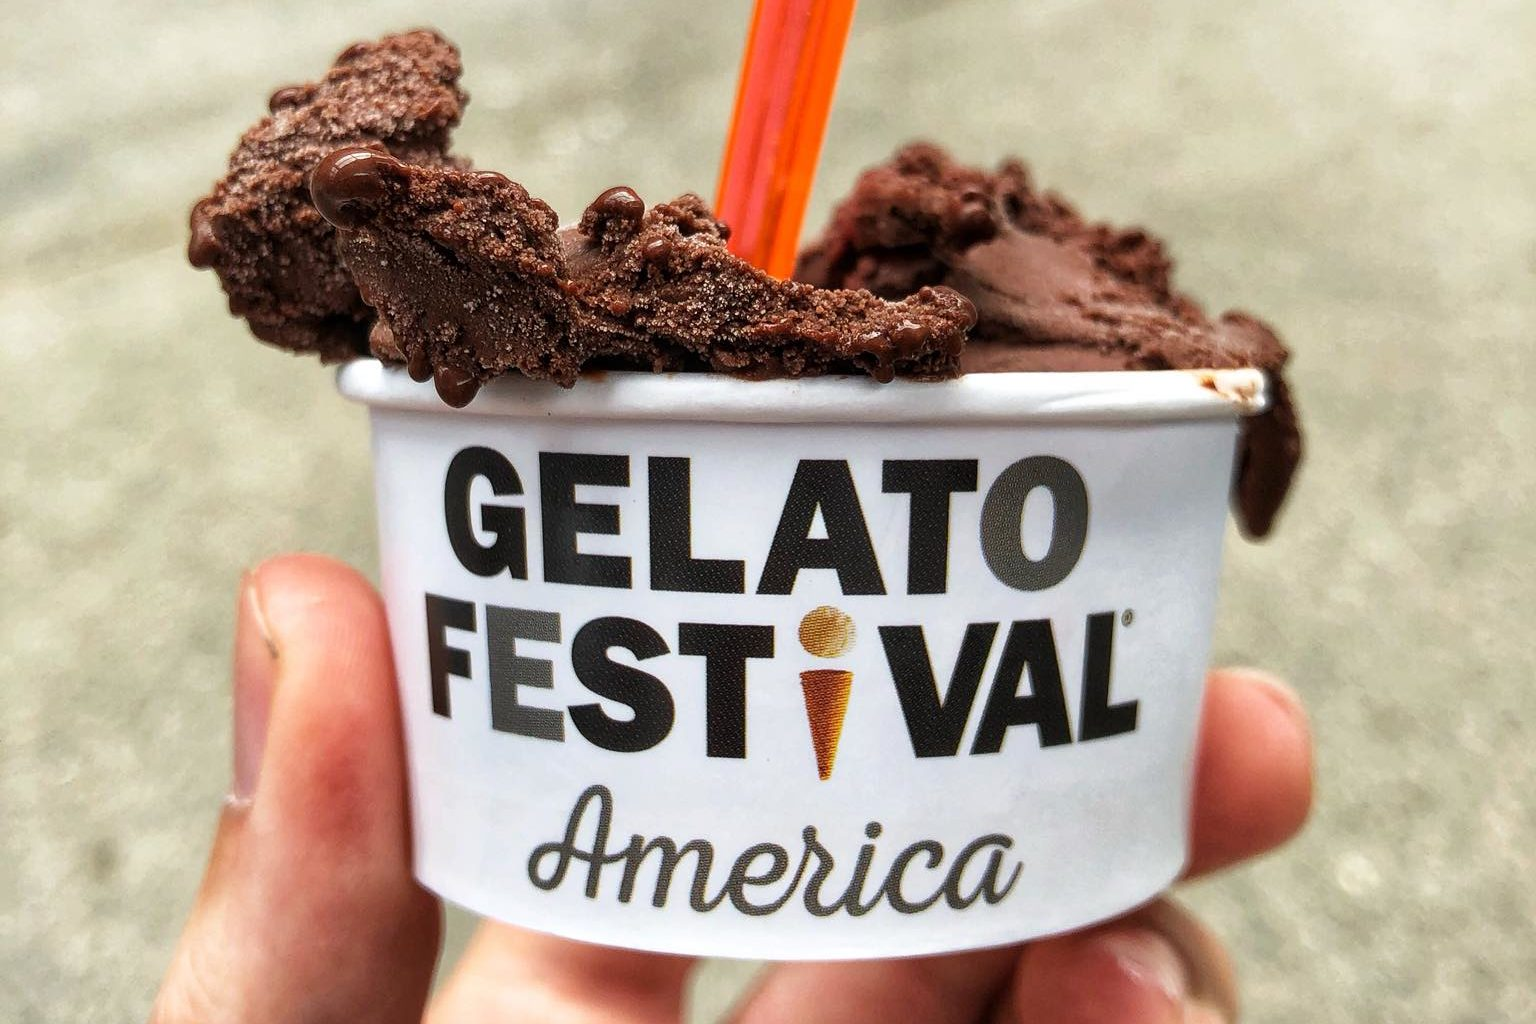 Must Try Flavors from Gelato Festival America 2018 Jersey City, NJ Stage